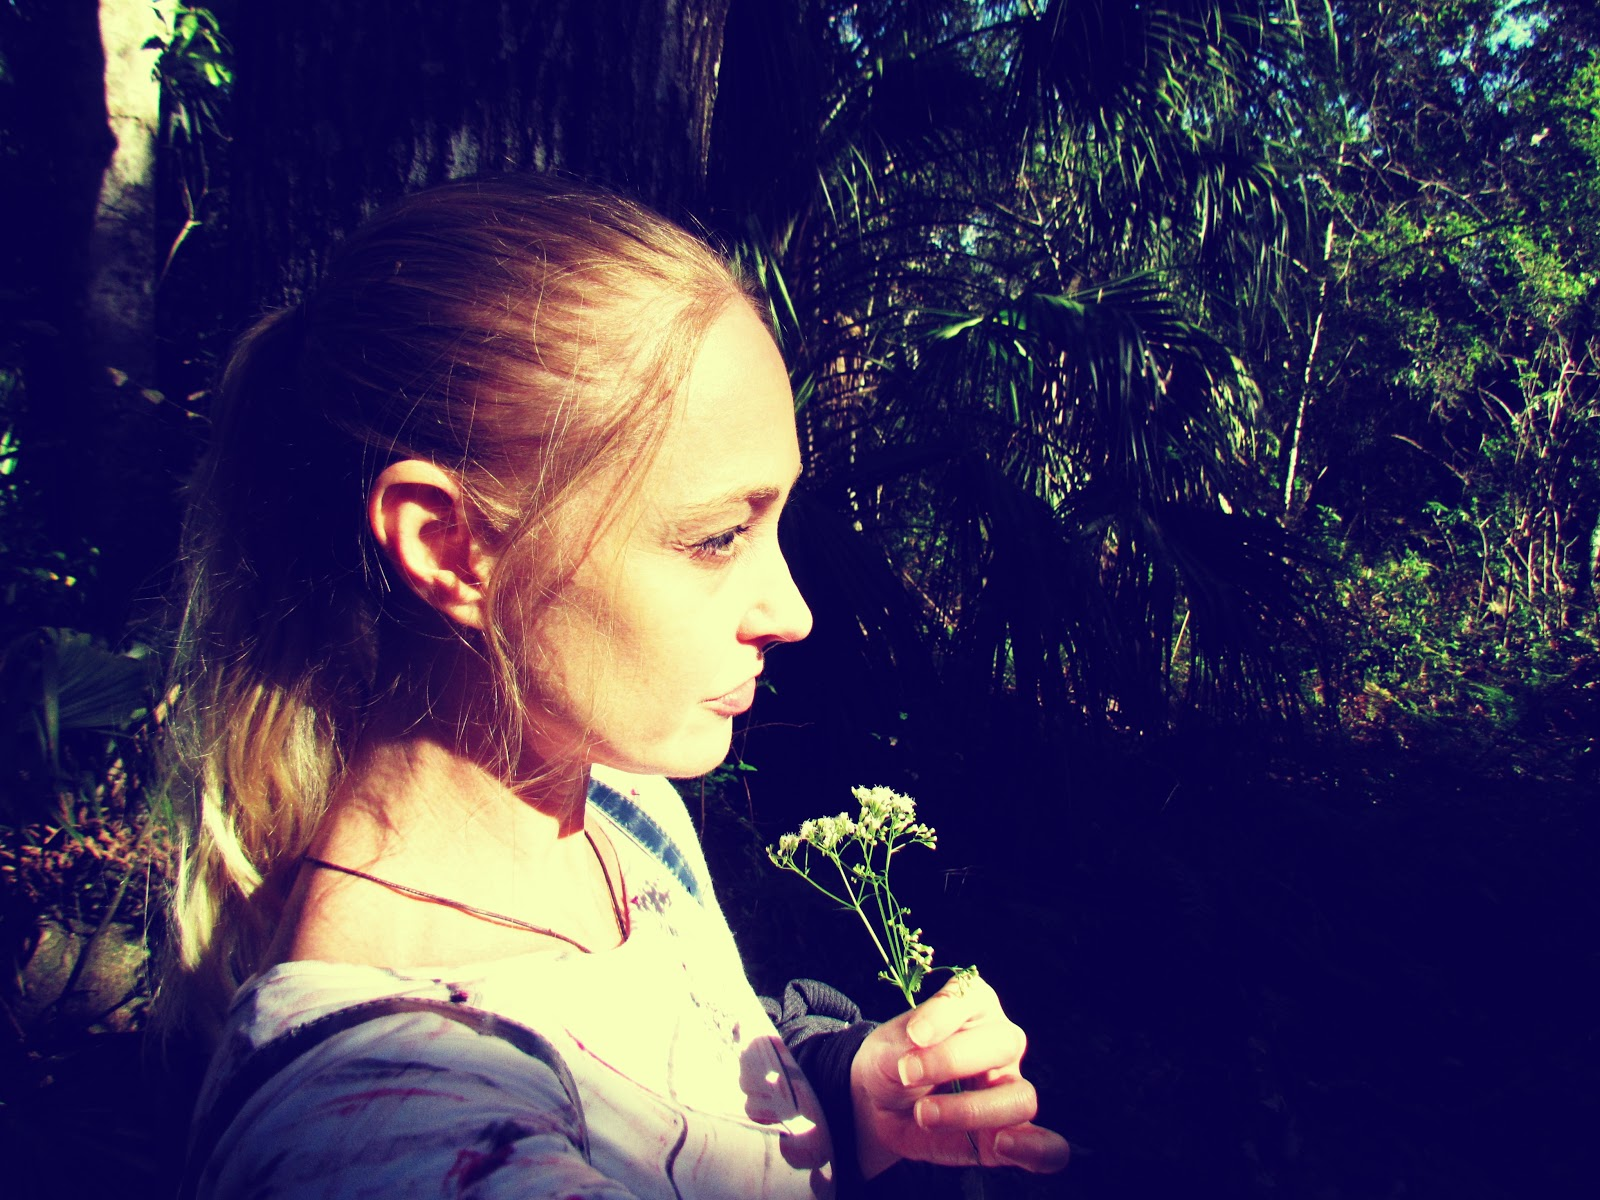 A woman with a ponytail walking on a trail in tropical Florida with self portrait